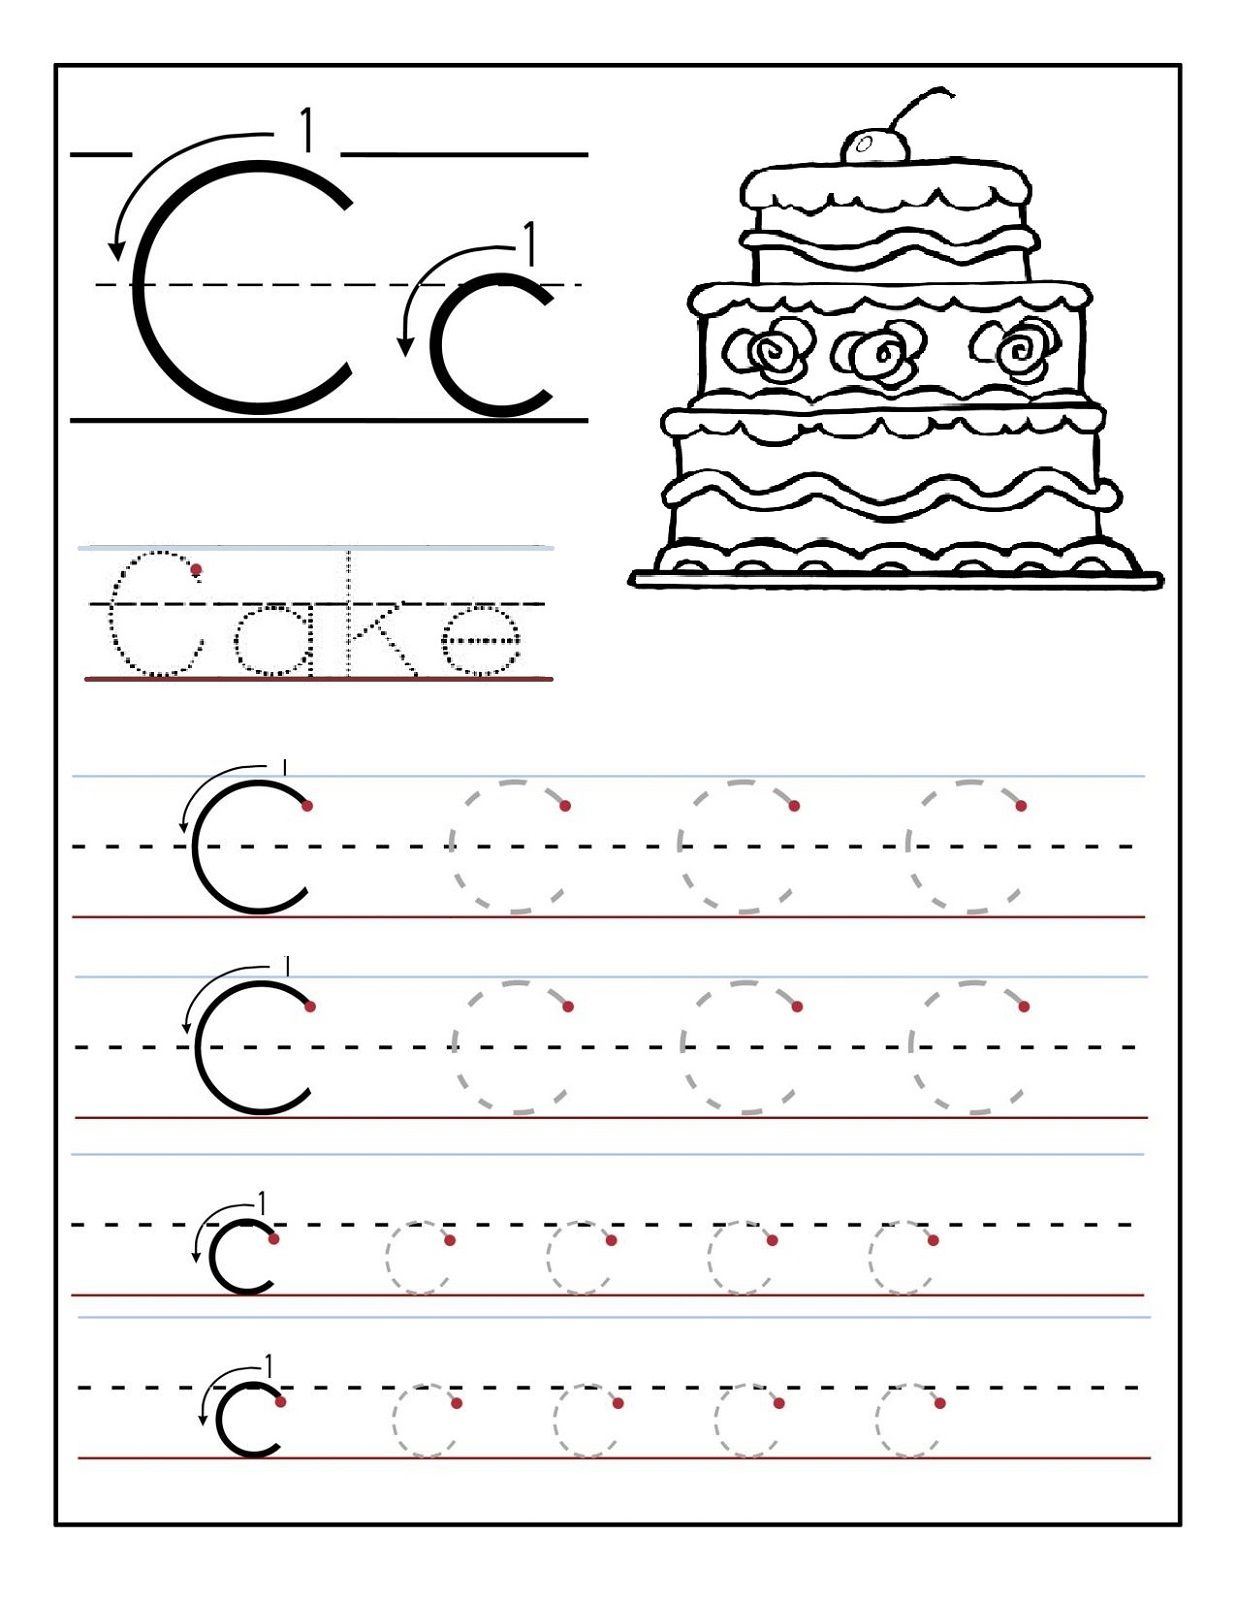 Letter C Tracing Printable